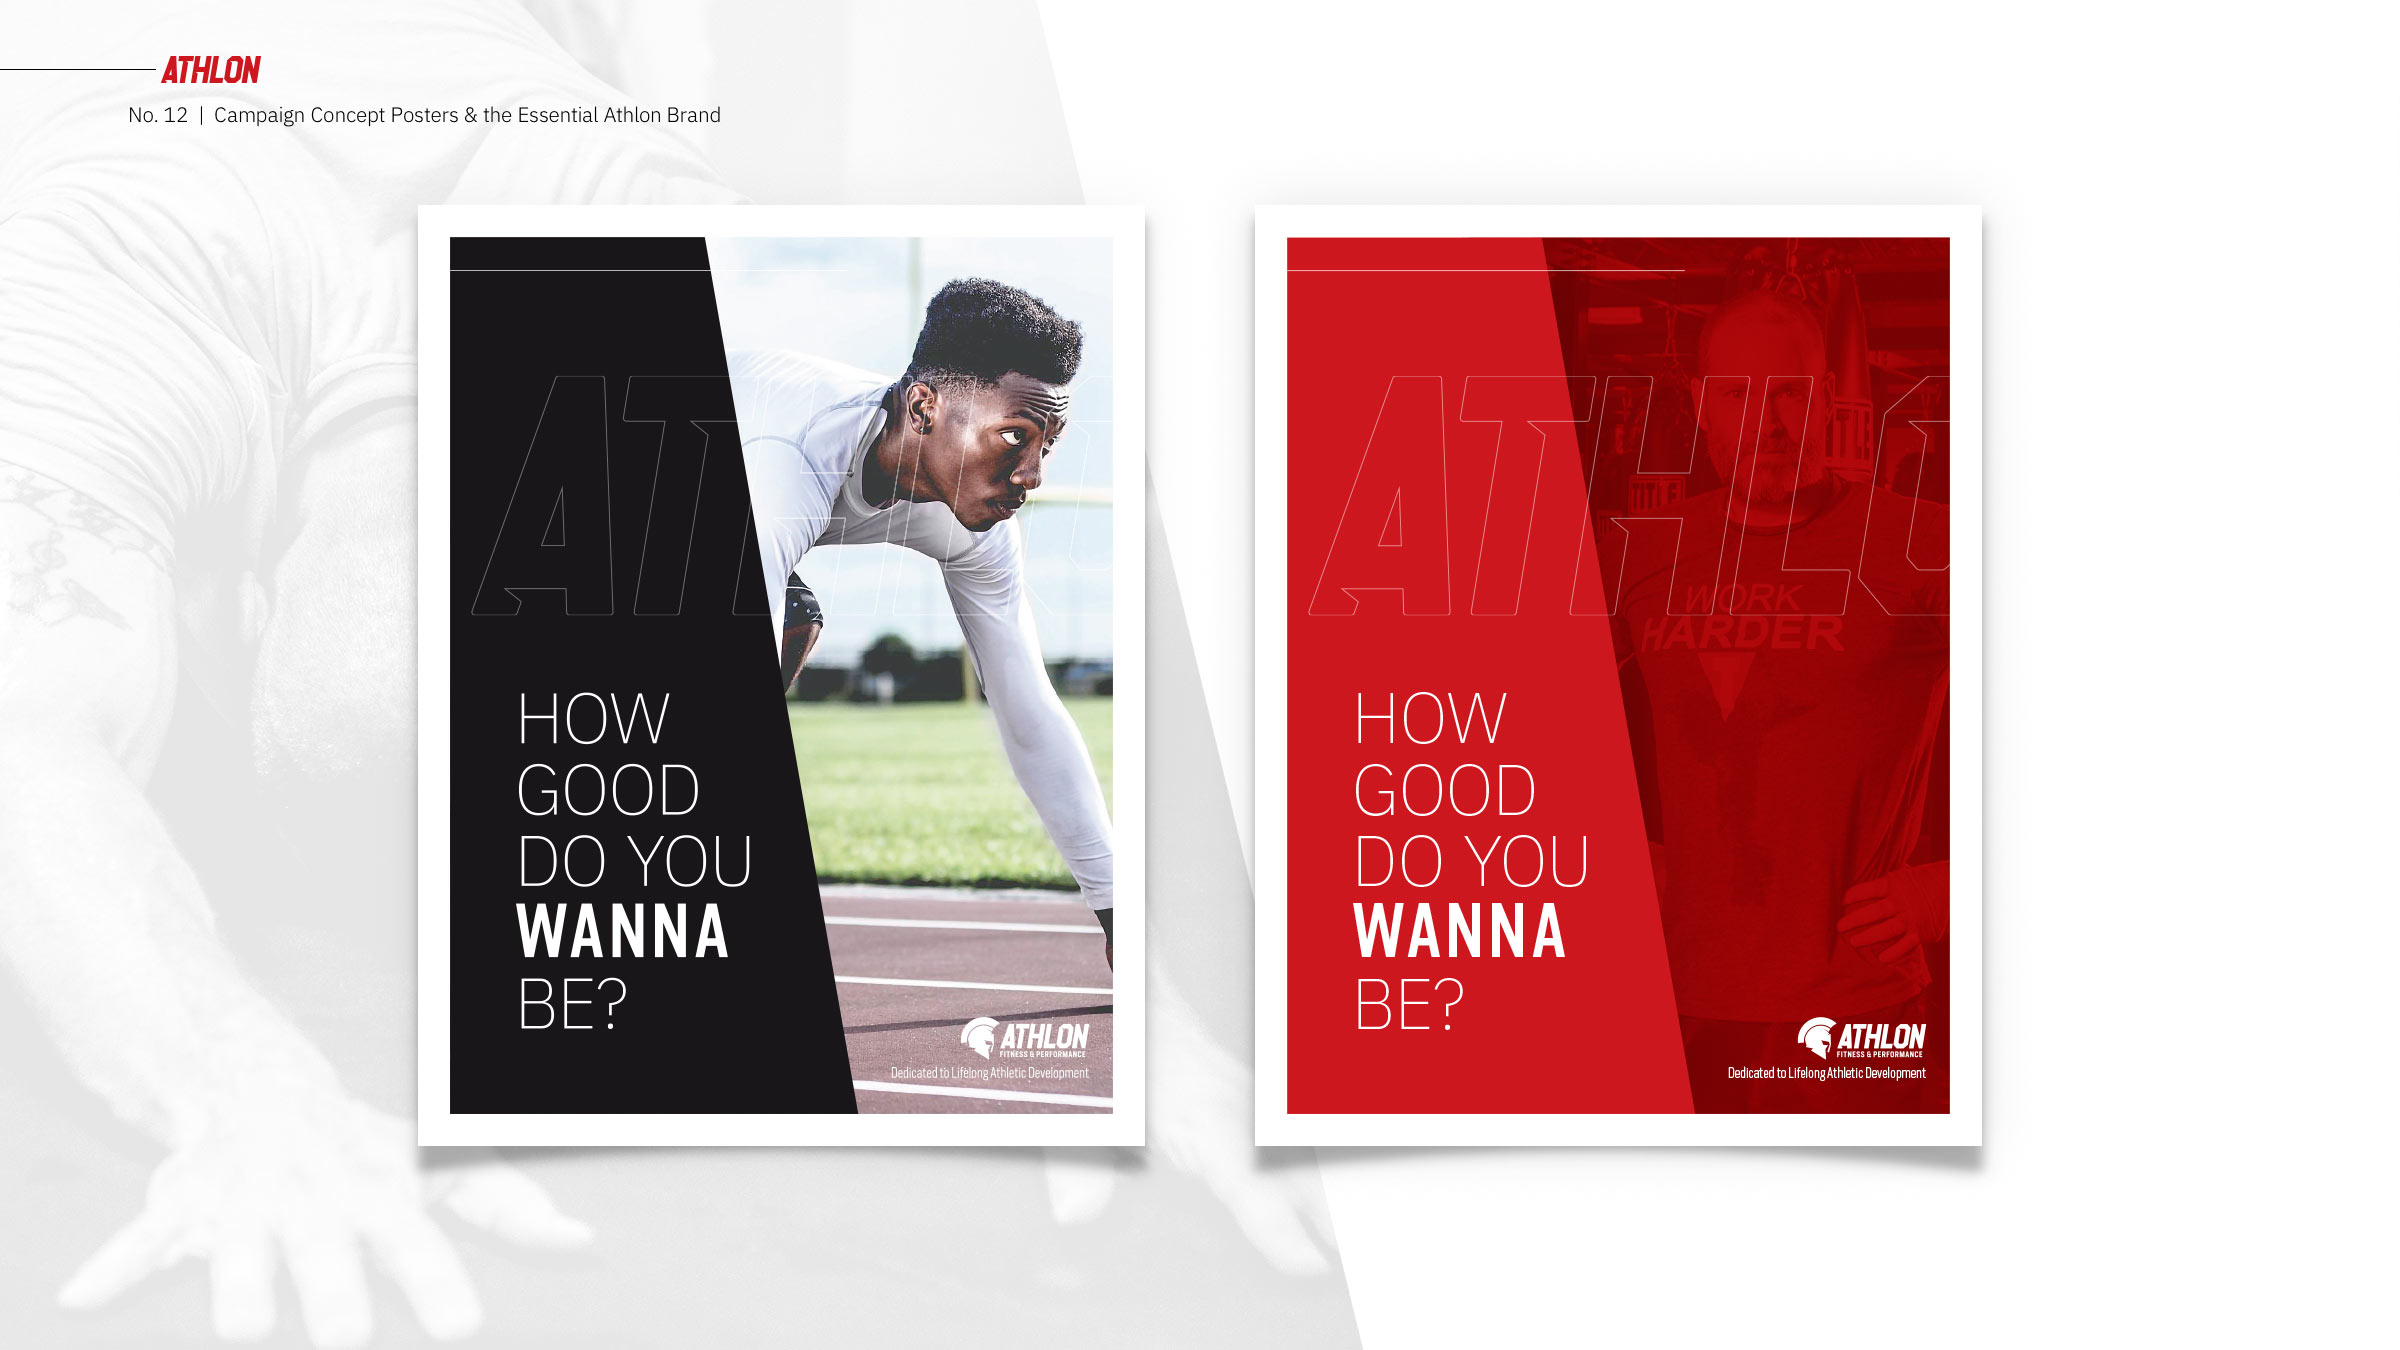 Athlon-Brand-Refresh-12-Campaign-Posters